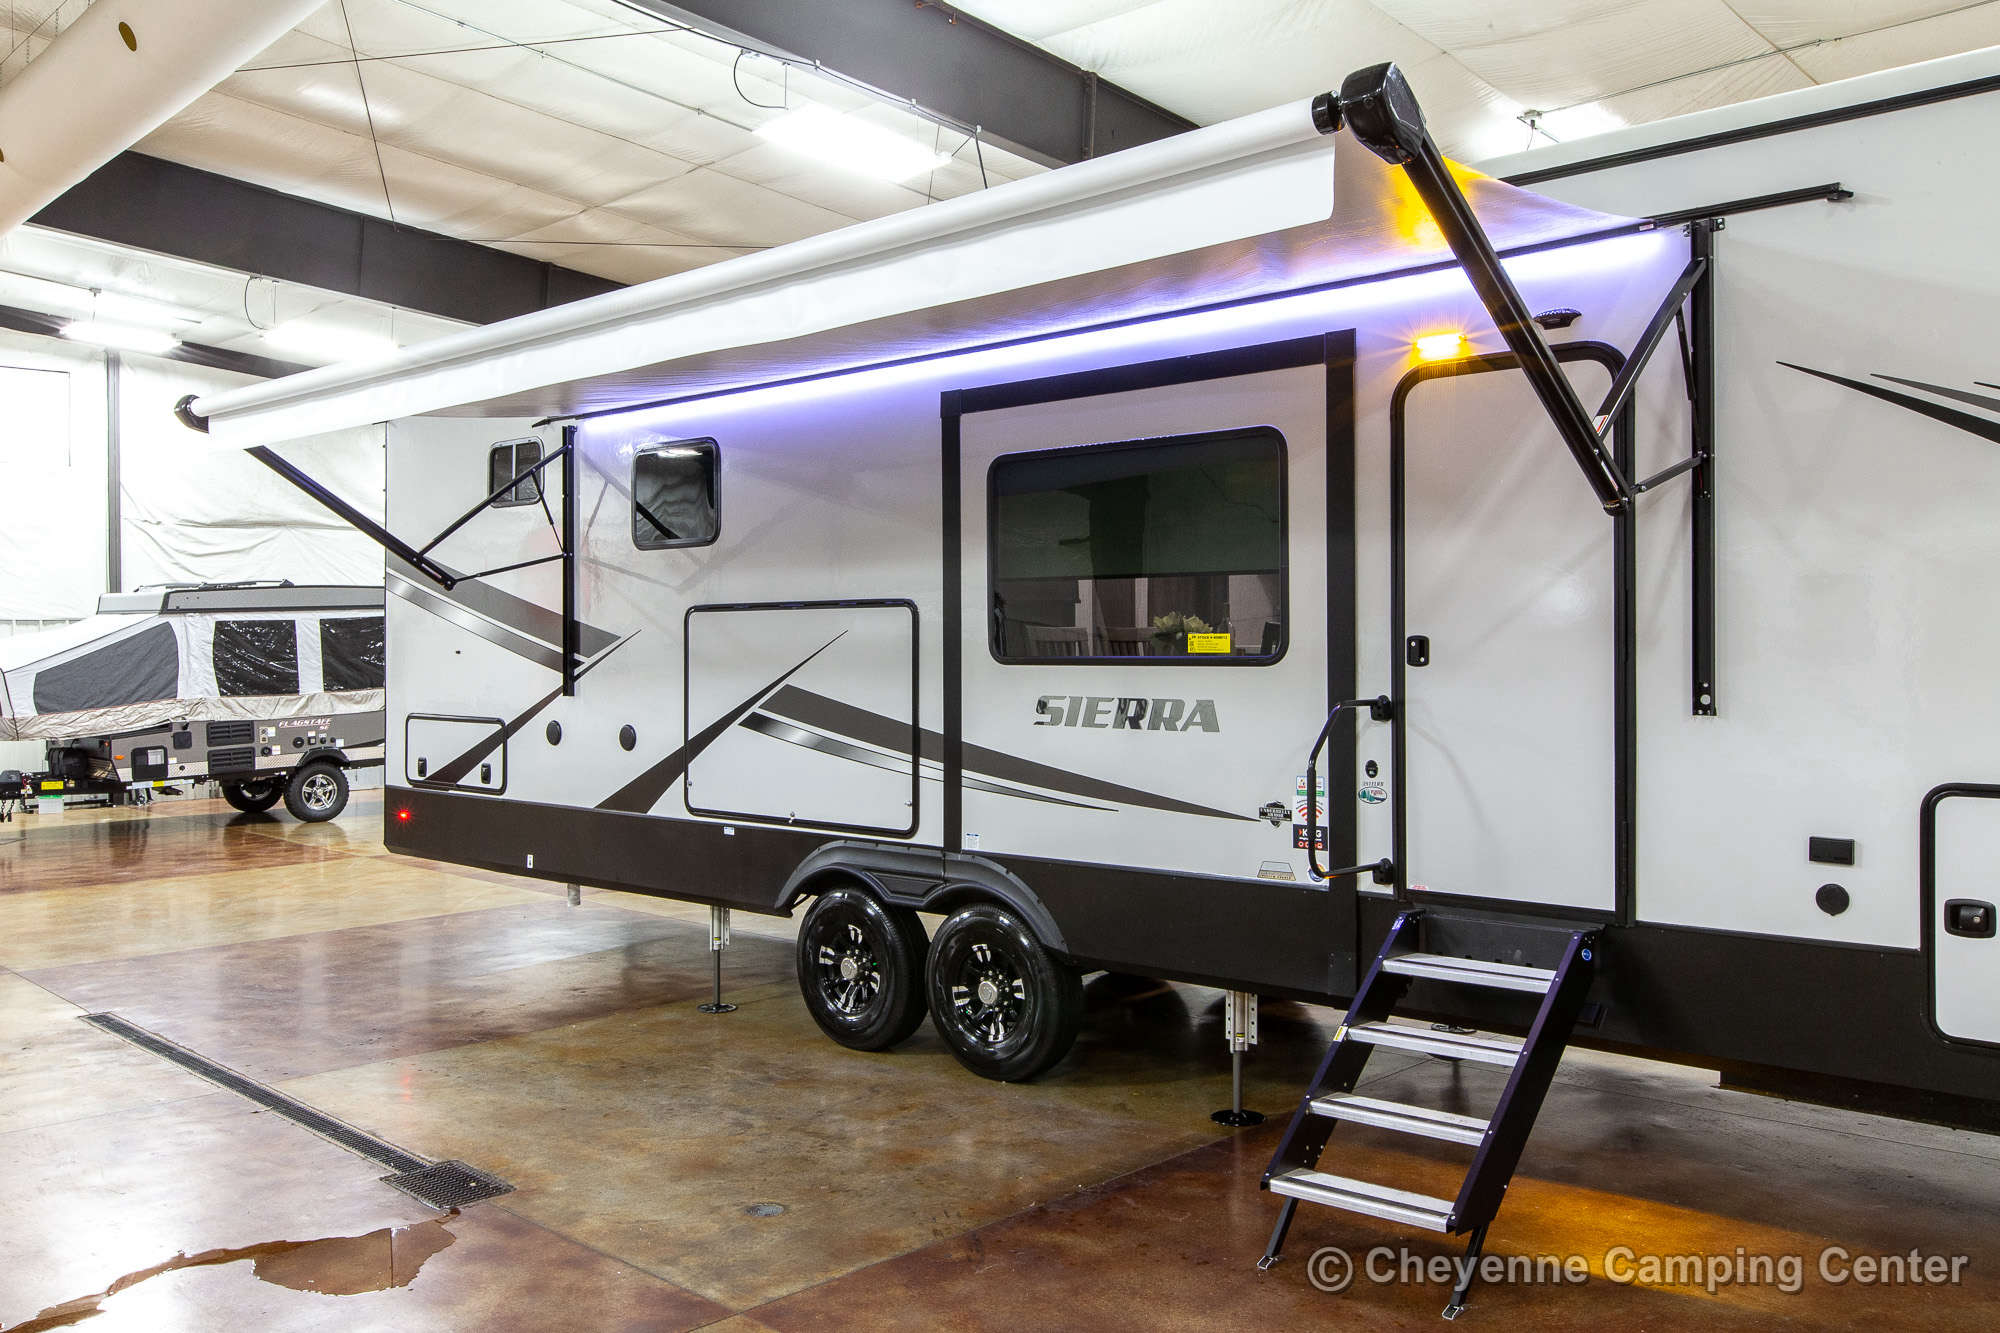 2021 Forest River Sierra 391FLRB Fifth Wheel Exterior Image